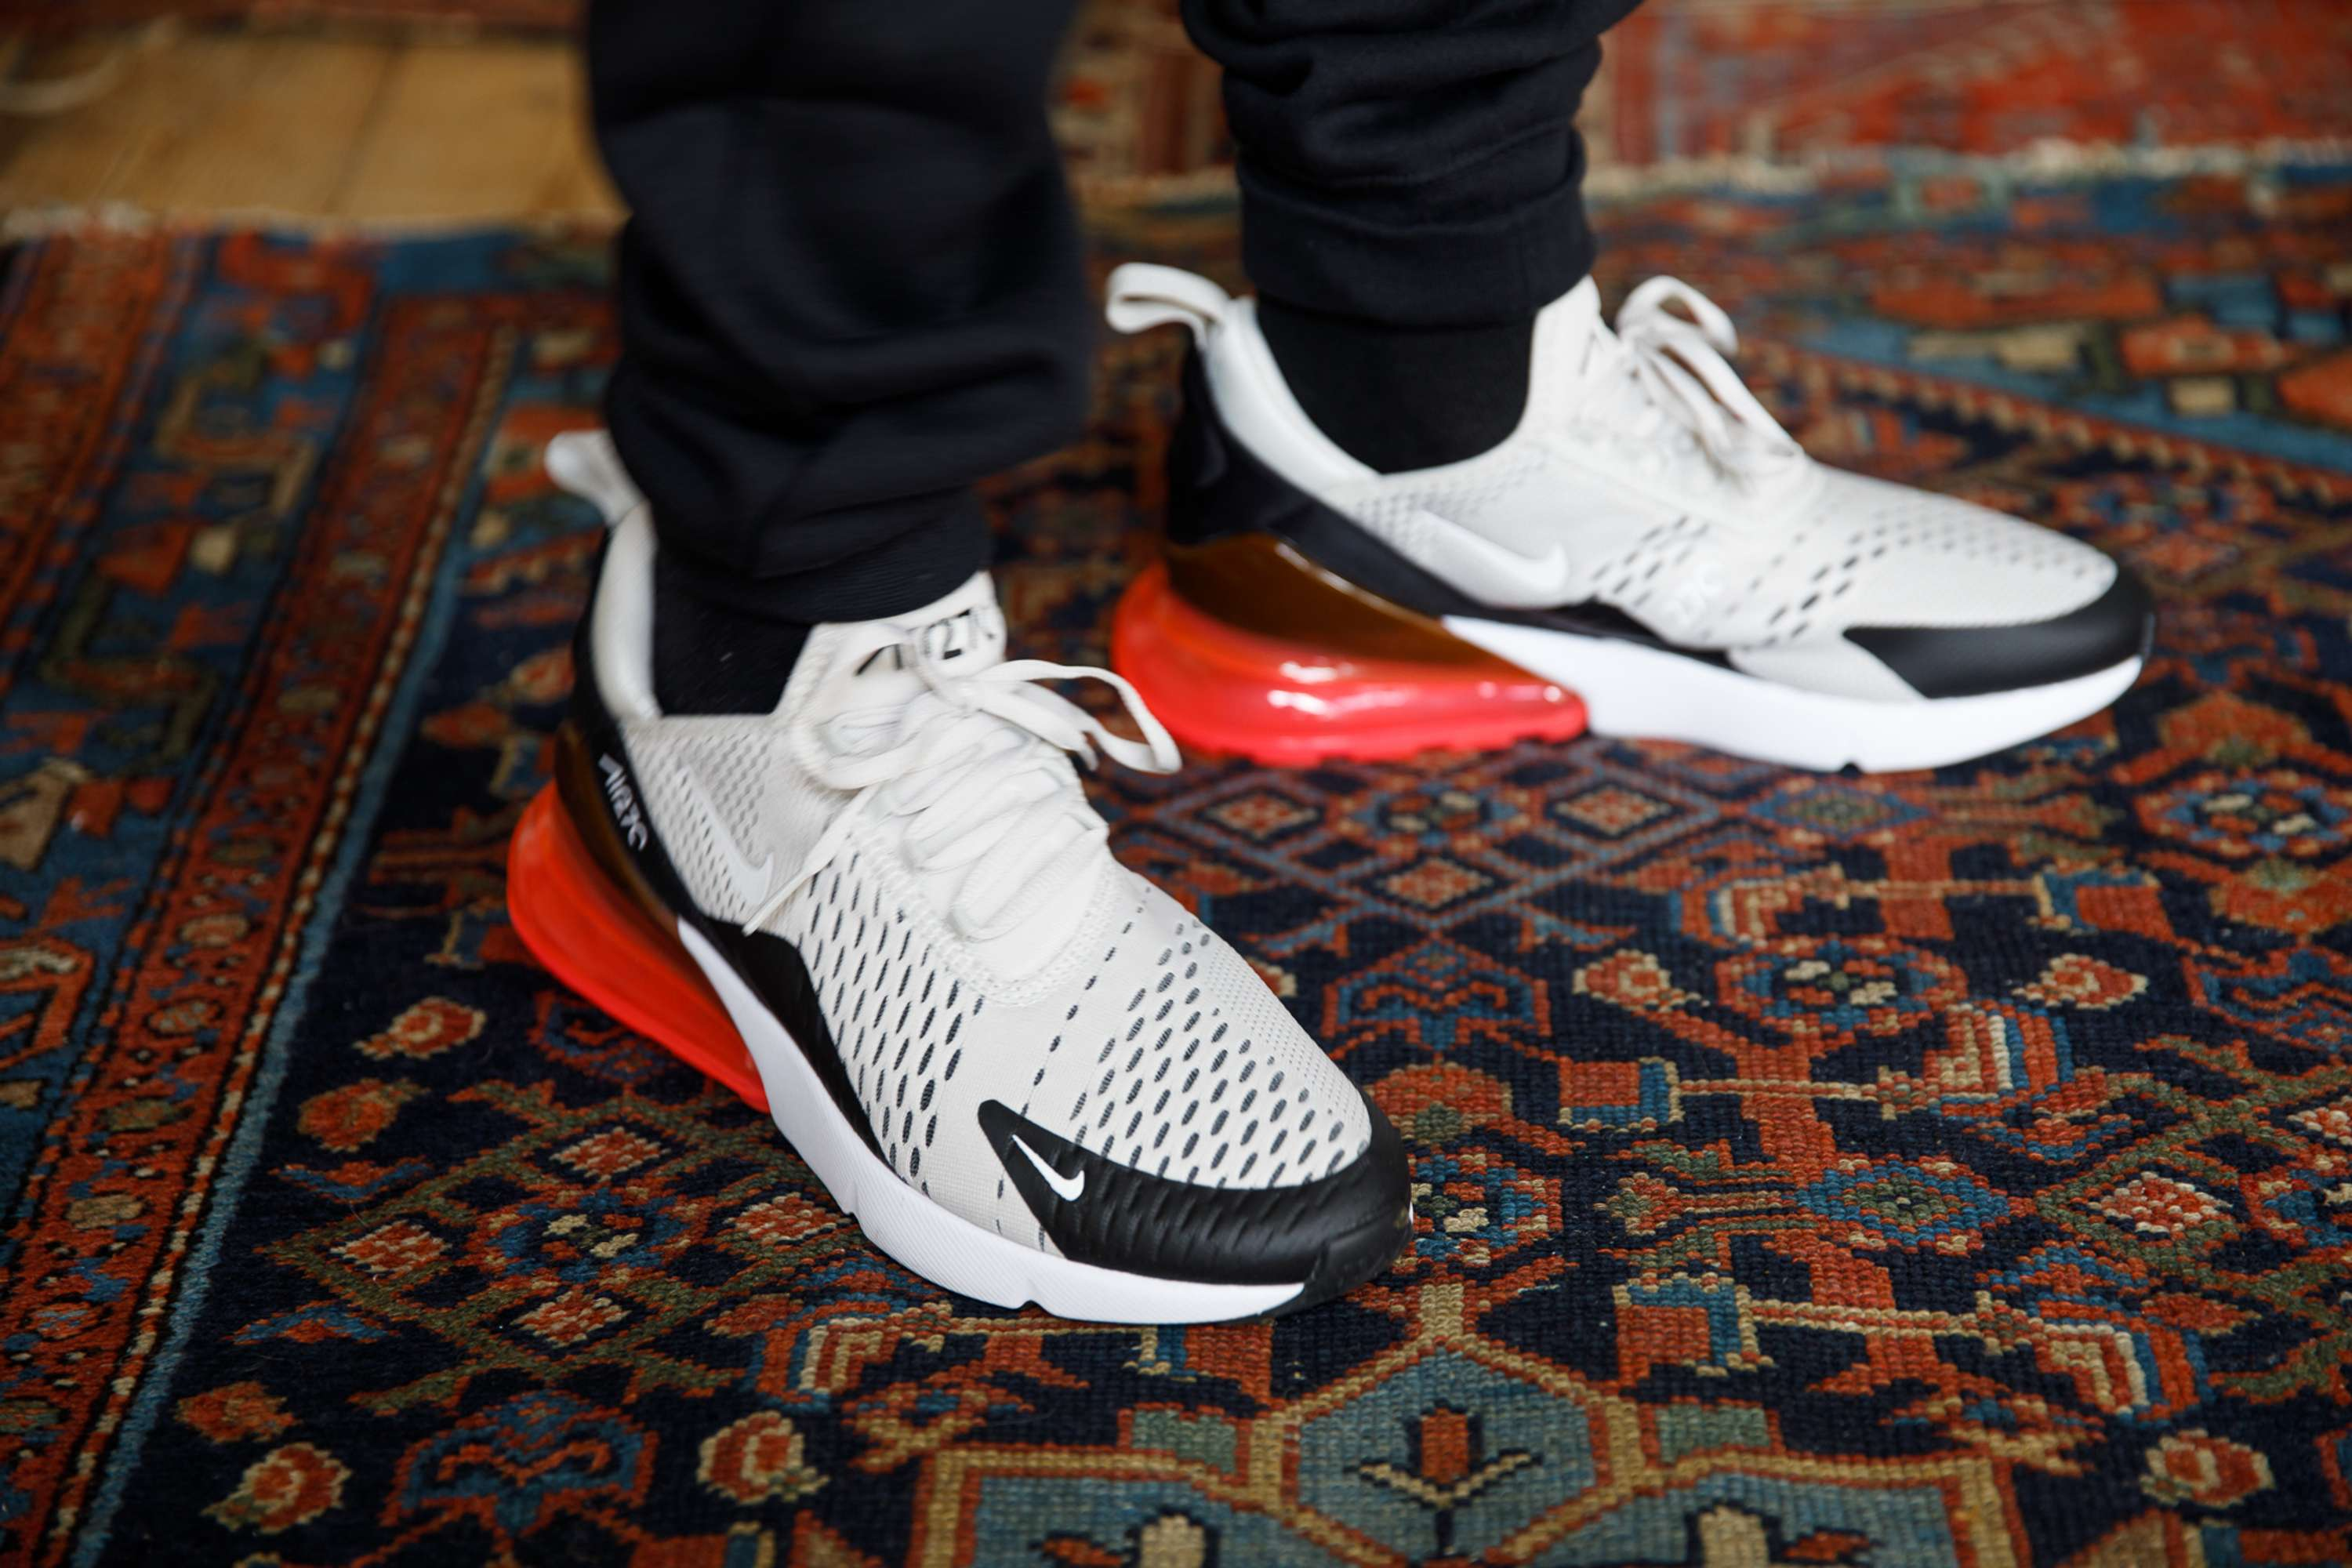 buy popular fba2f 210b2 Litty Lightz: Nike Air Max 270 x Footasylum Campaign | The Dots